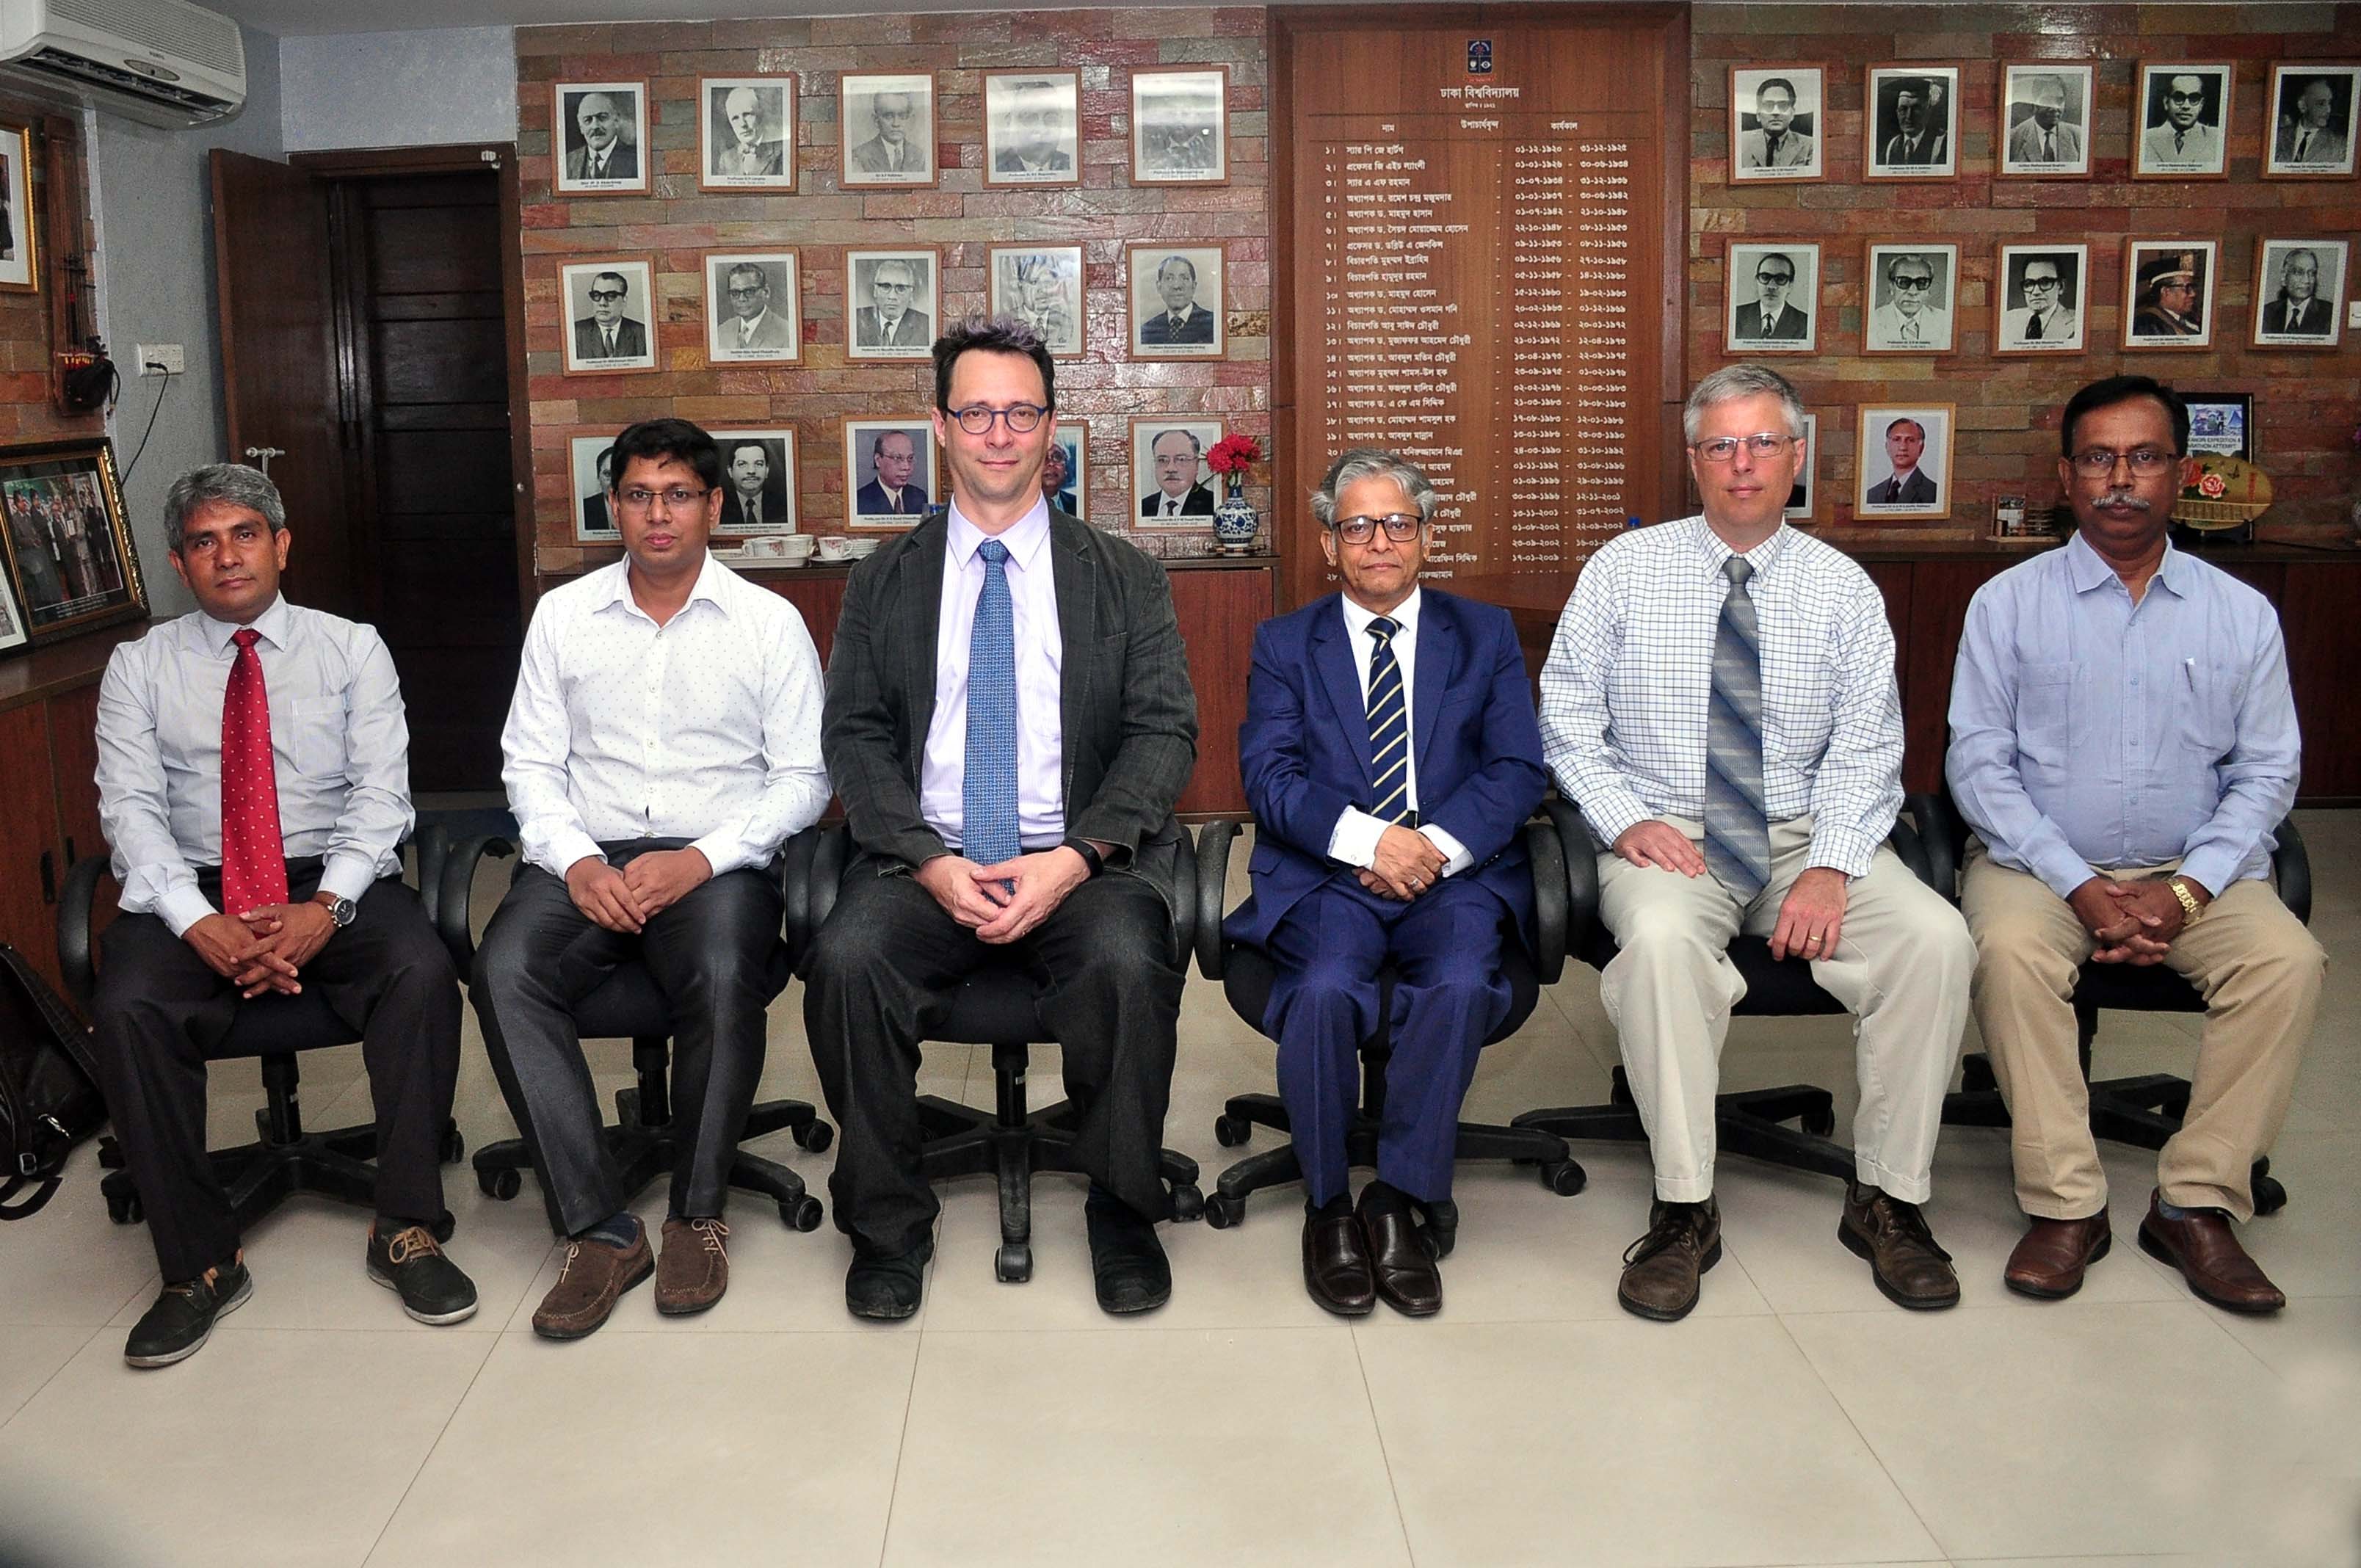 Left to right: Dr. Bishawjit Mallick (TU Dresden); Prof. Monirul Islam, Department of Fisheries, Dhaka University; Prof. Jonathan Gilligan, Department of Earth & Envirionmental Sciences, Vanderbilt University; Prof. Dr. Md. Akhtaruzzaman, Vice Chancellor of Dhaka University; Prof. Steve Goodbred, Chair of Earth & Environmental Sciences, Vanderbilt University; and Prof. Kazi Matin Ahmed, Chair of the Department of Geology, Dhaka University